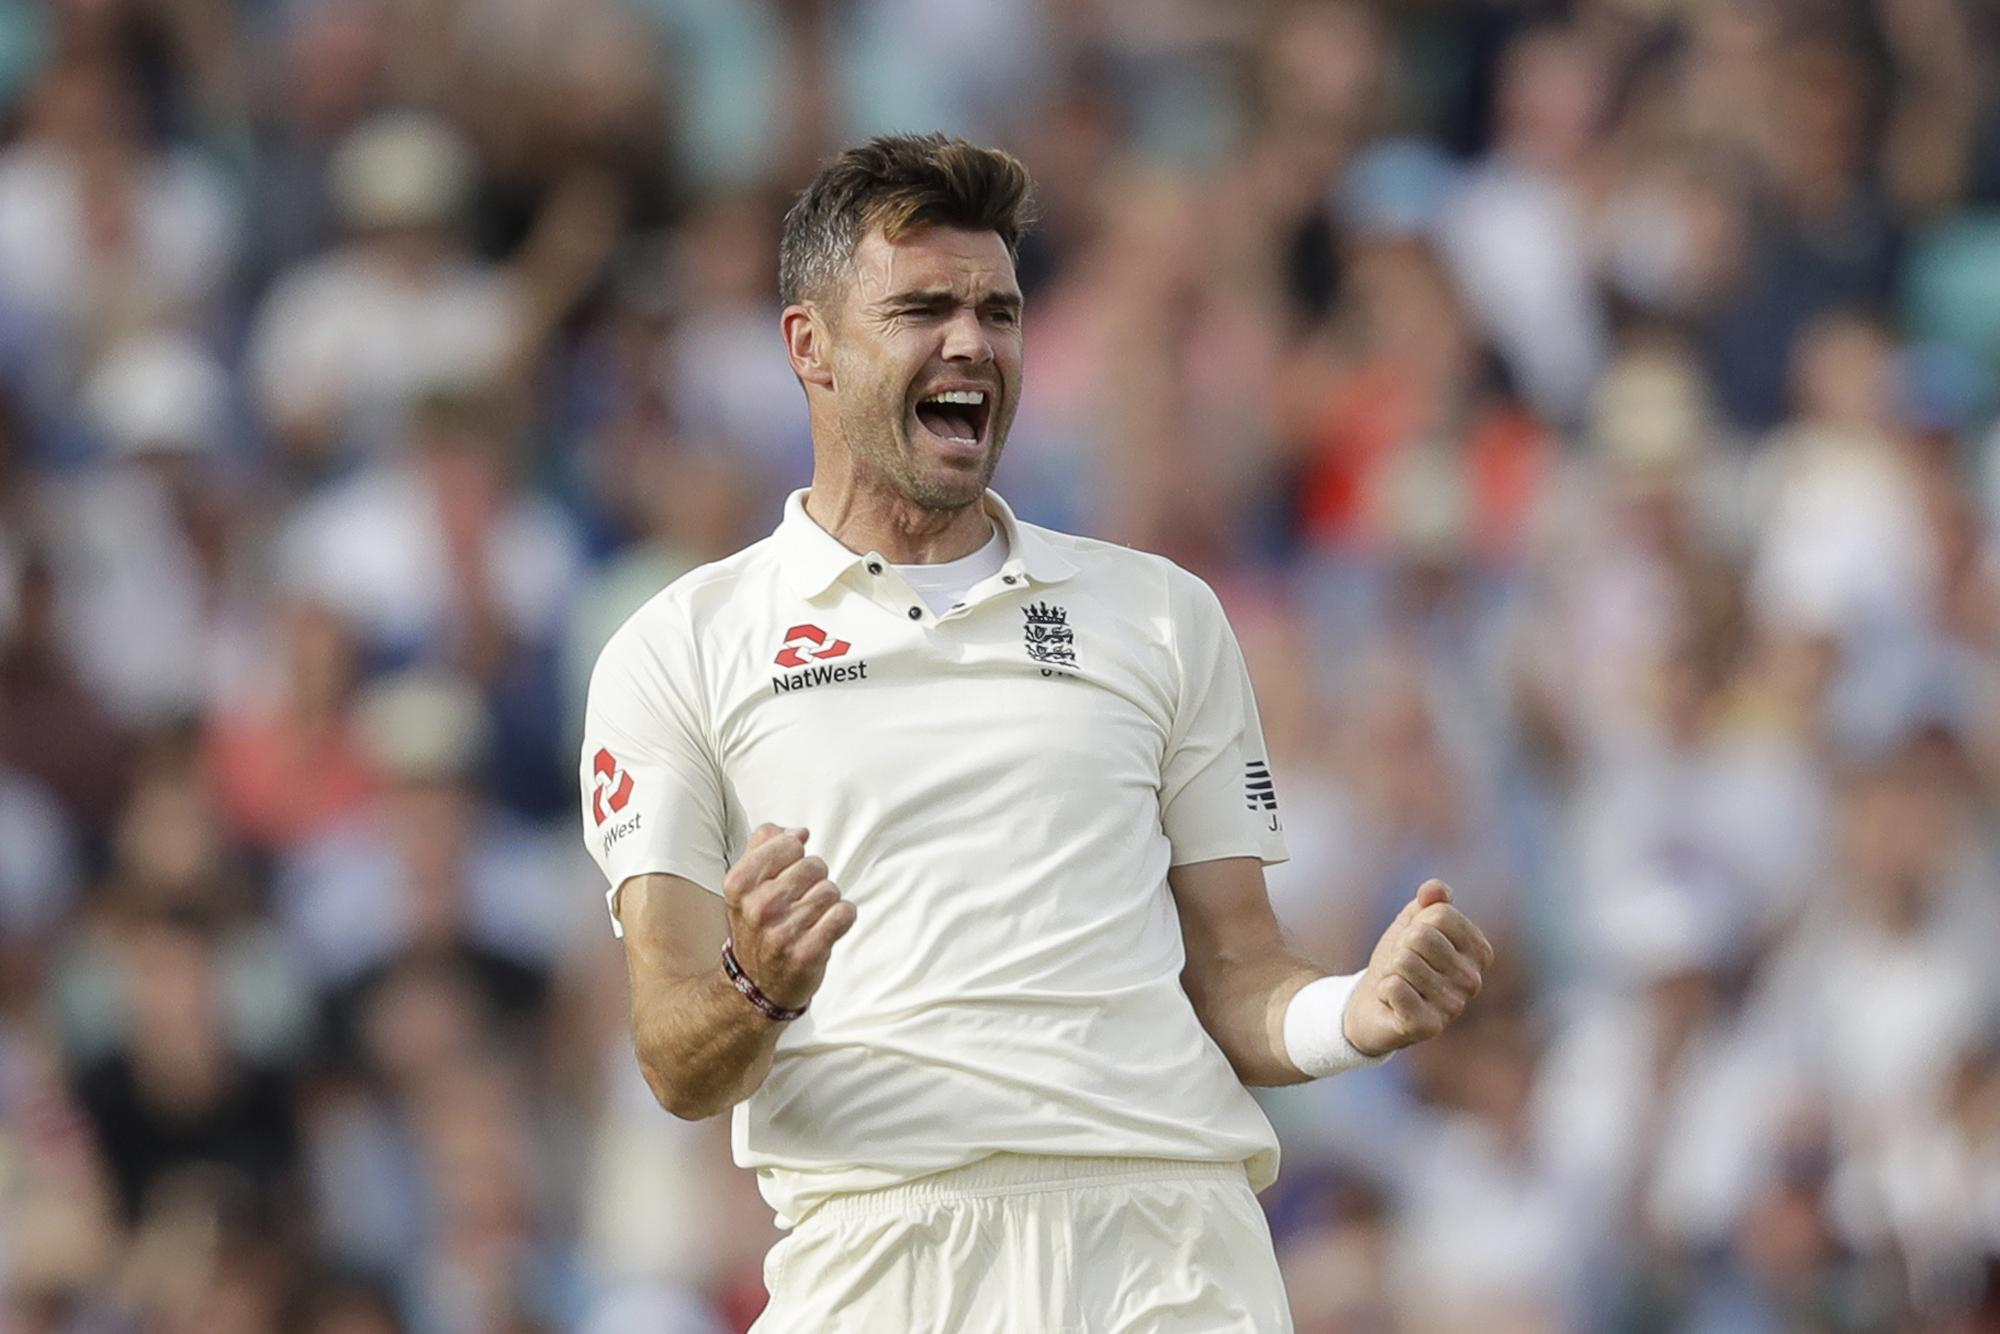 Jimmy Anderson took India's final wicket at the Oval